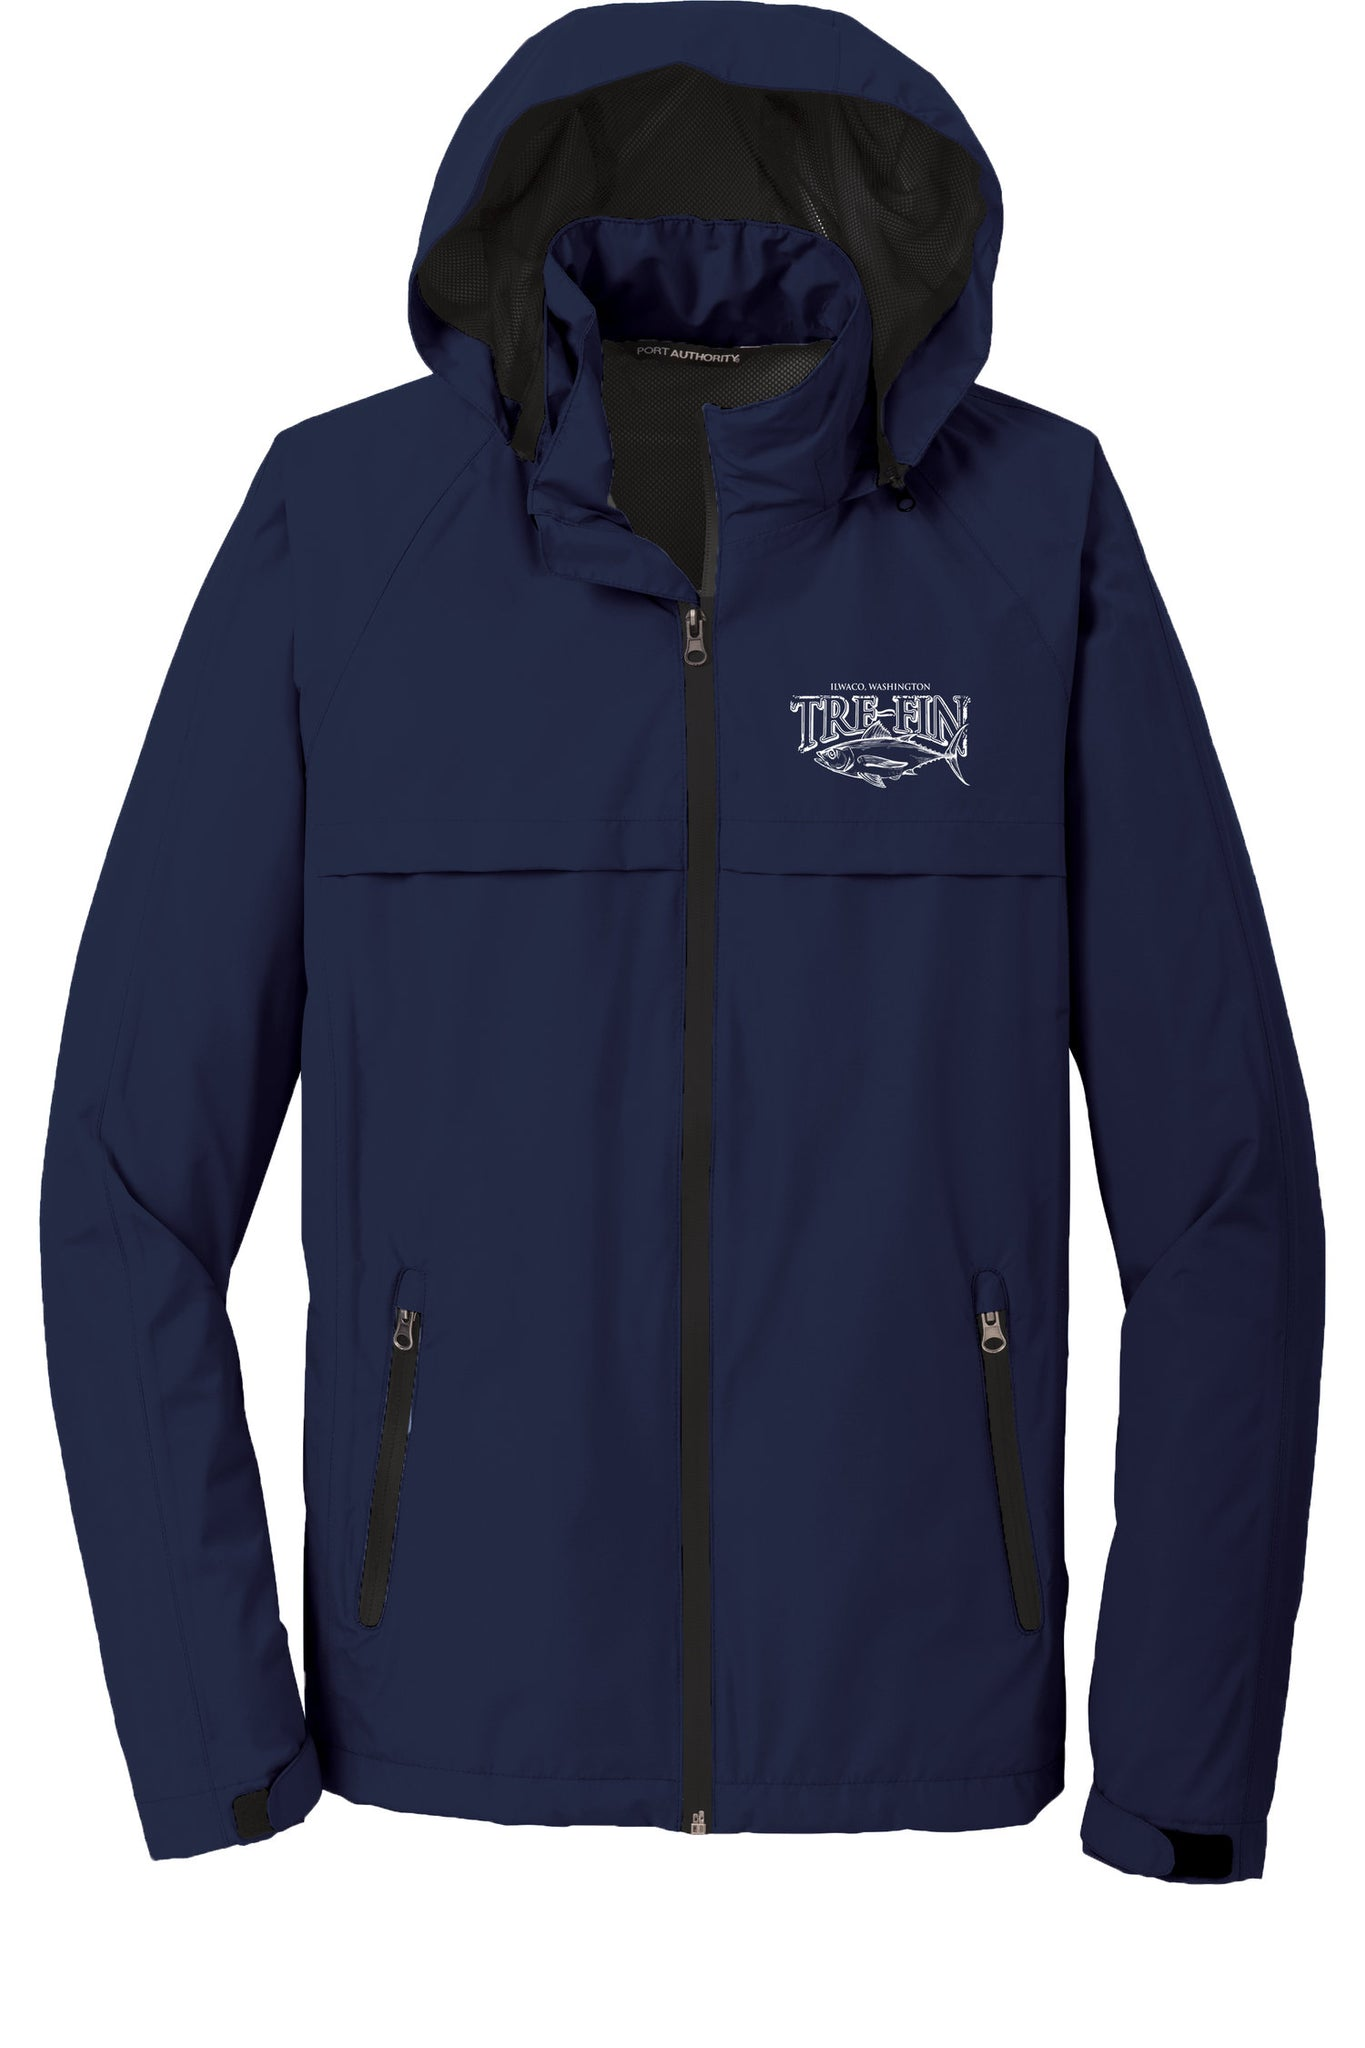 Men's Heritage Logo Waterproof Rain Jacket in Navy